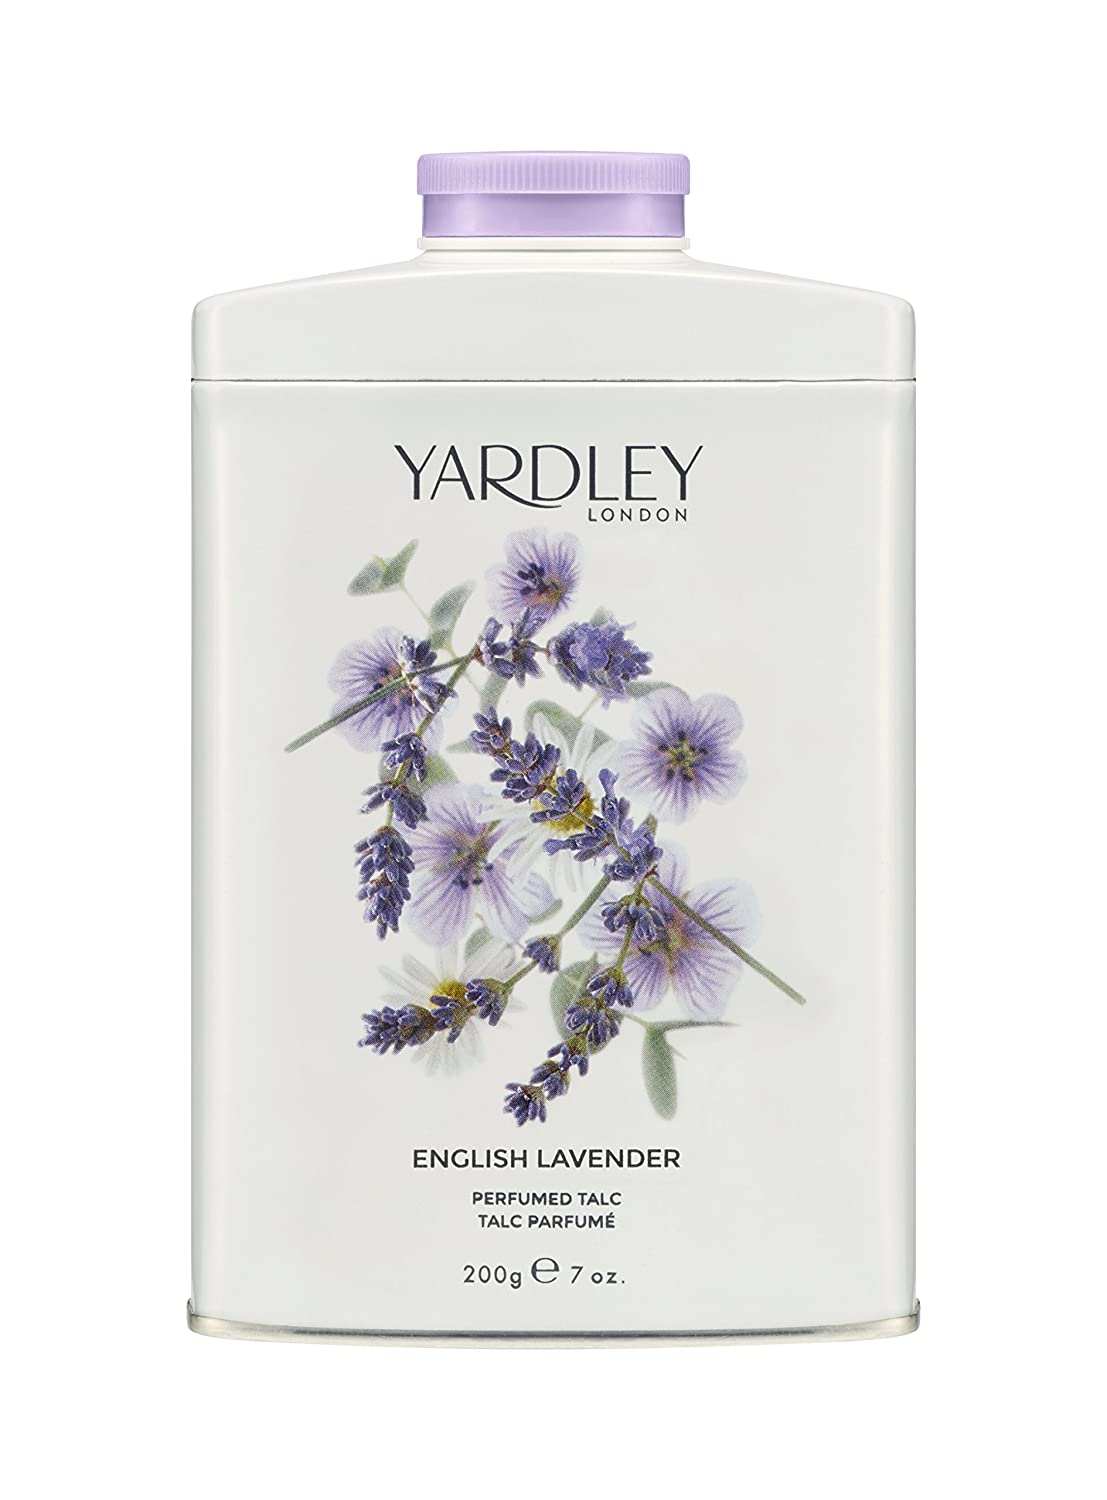 YARDLEY English Lavender Talco perfumado 200 g Yardley London 5060322952246